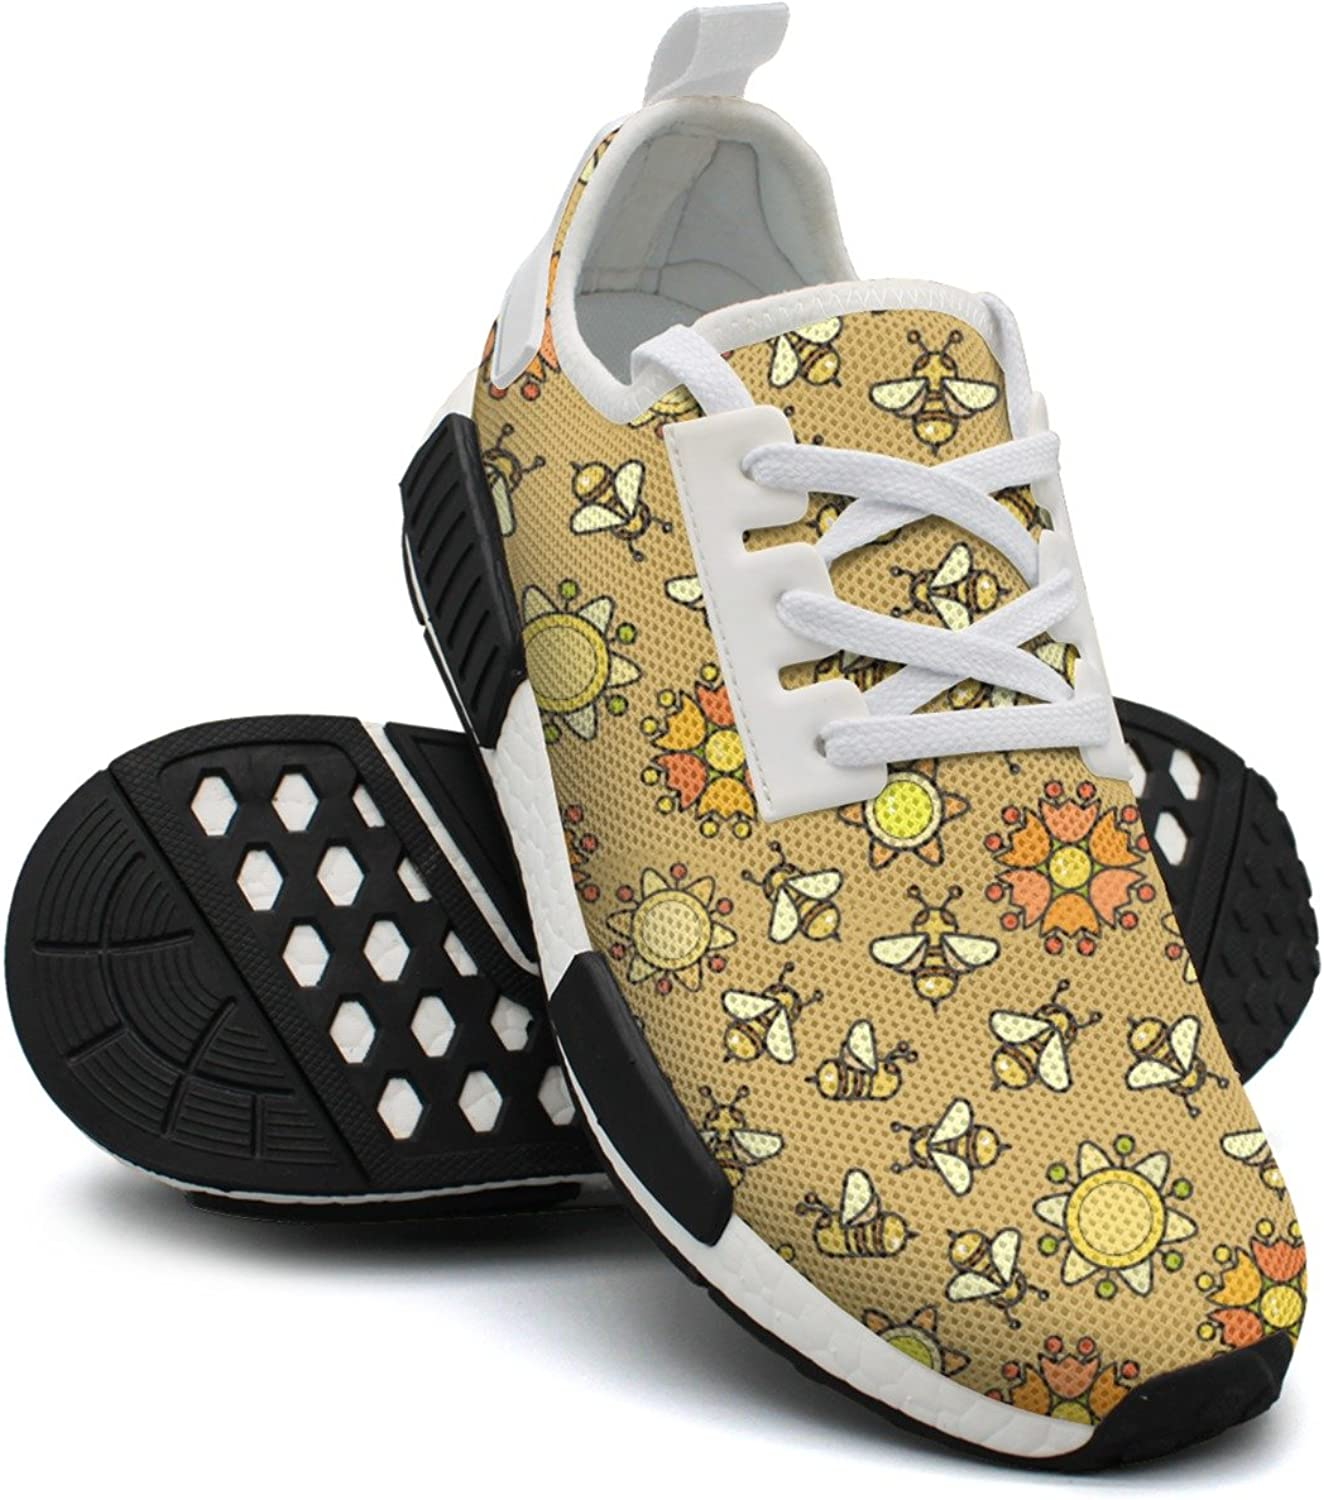 Bee And Flowe Lightweight Running shoes Women Nmd Fashion Sport shoes